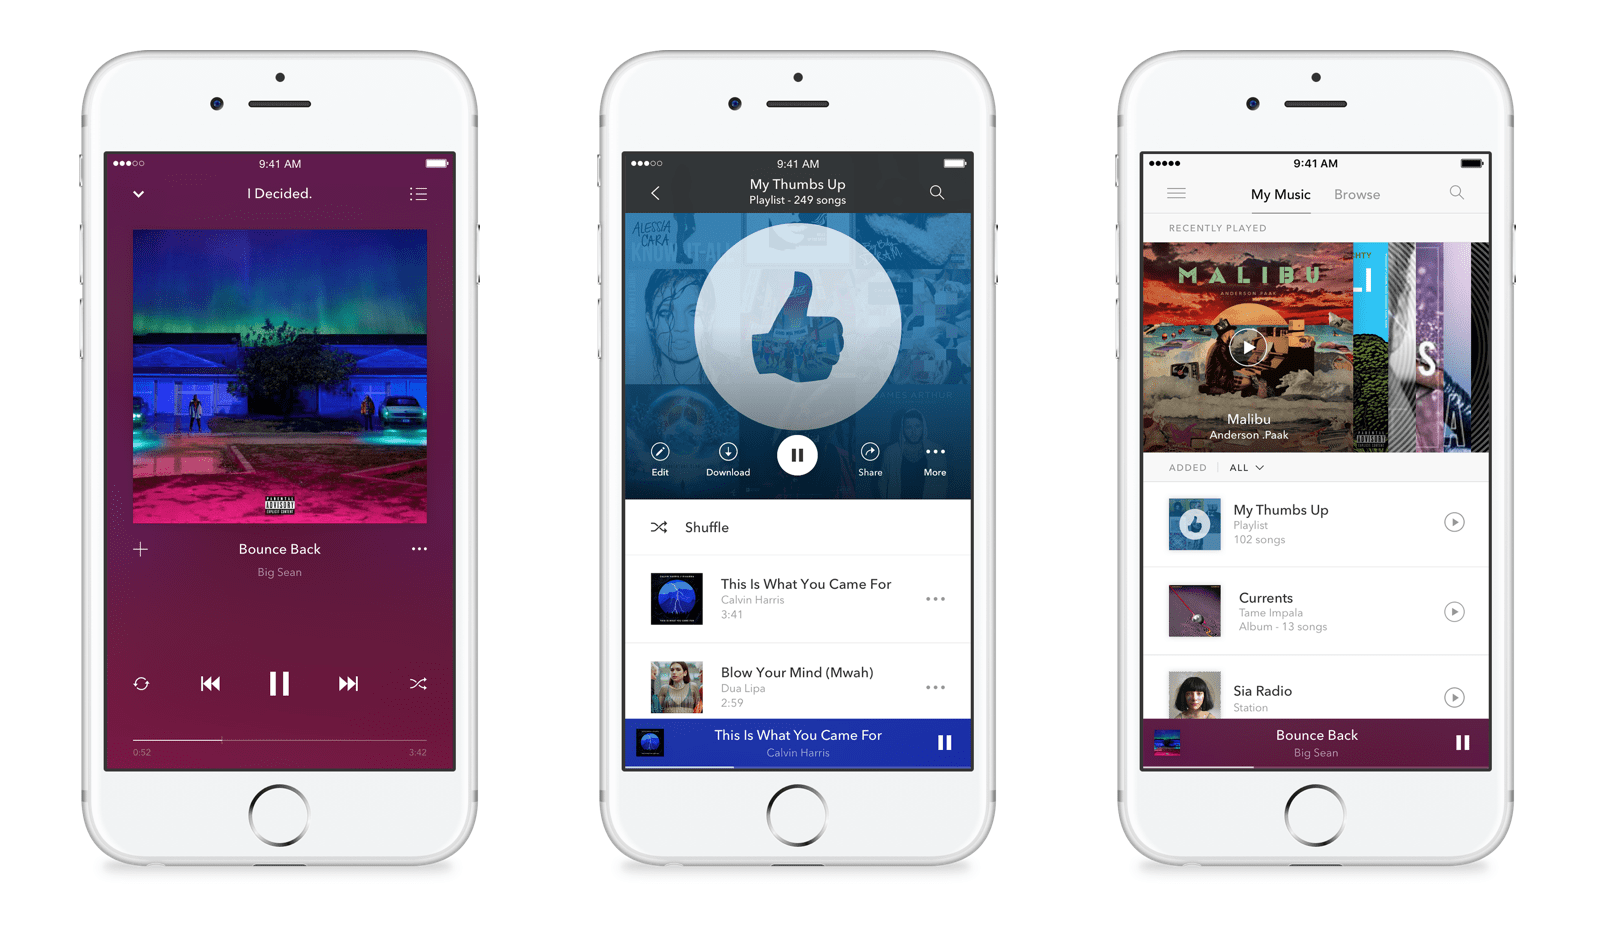 Pandoras New On Demand Music Service Is Beautiful But Is That Enough